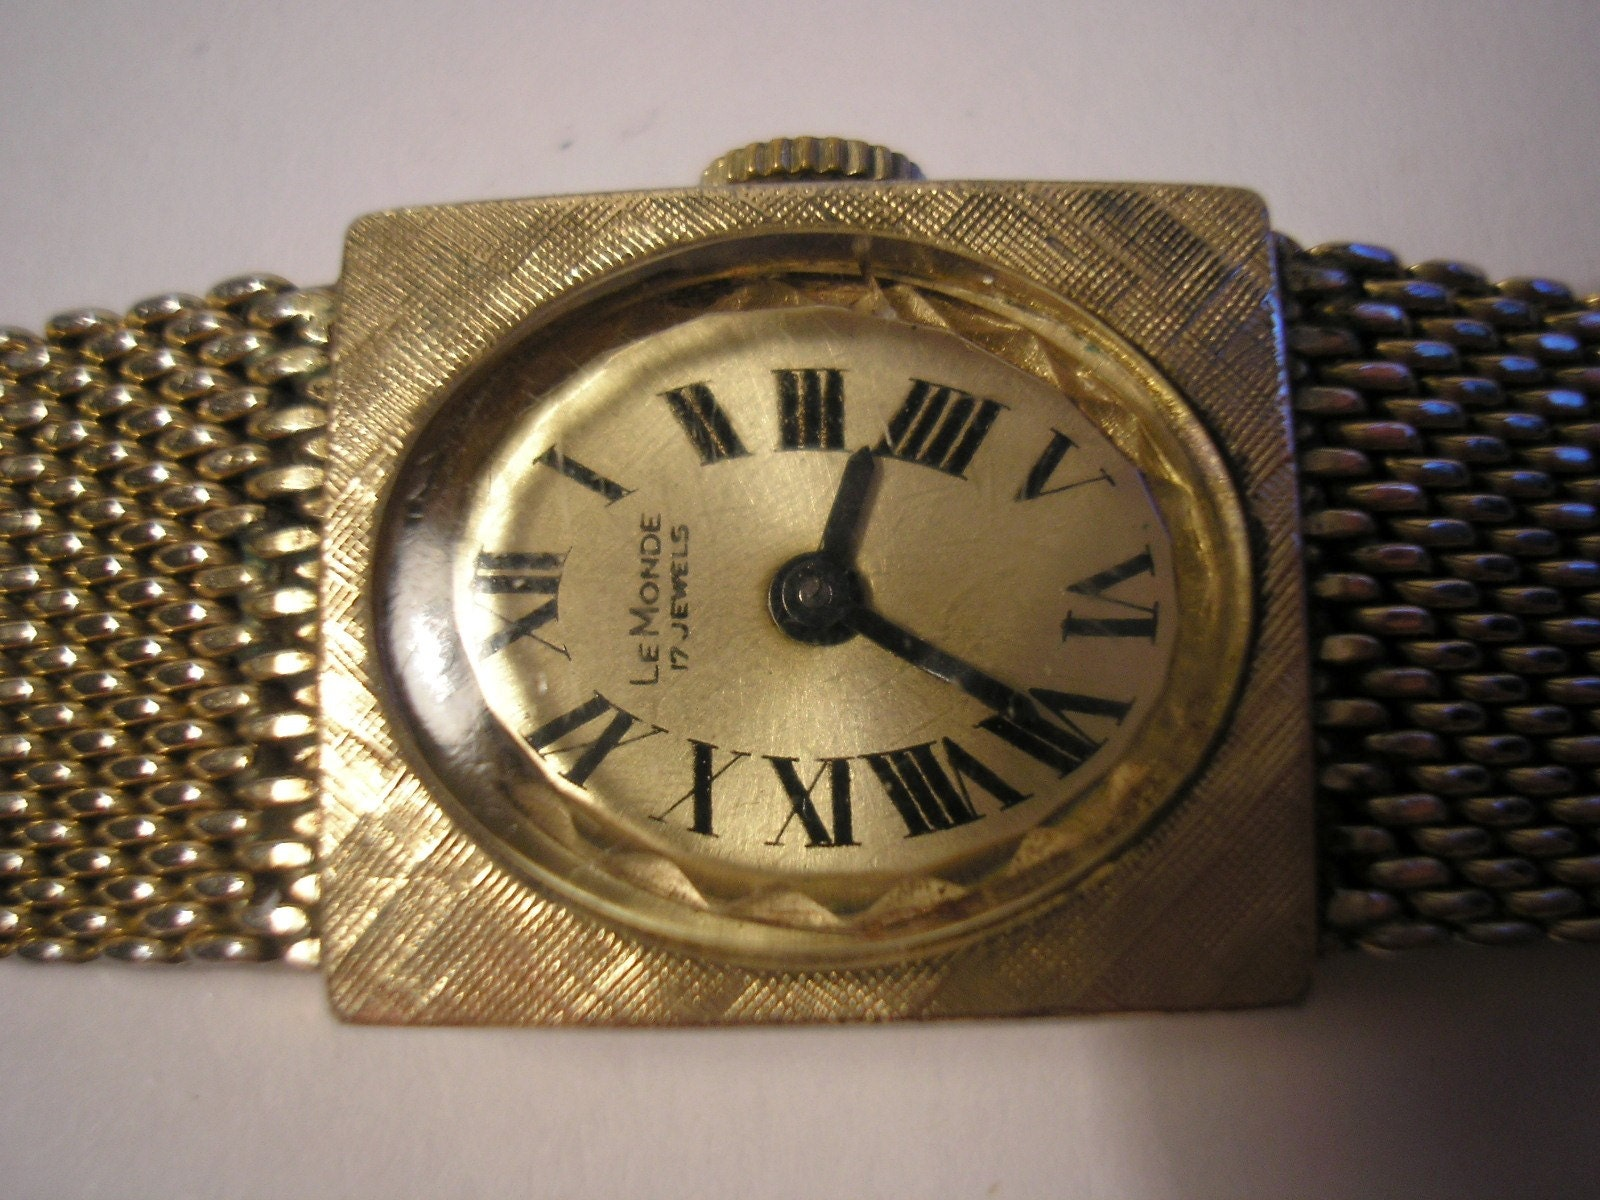 Vintage mechanical women hand watch Le Monde 17 by craftforyou